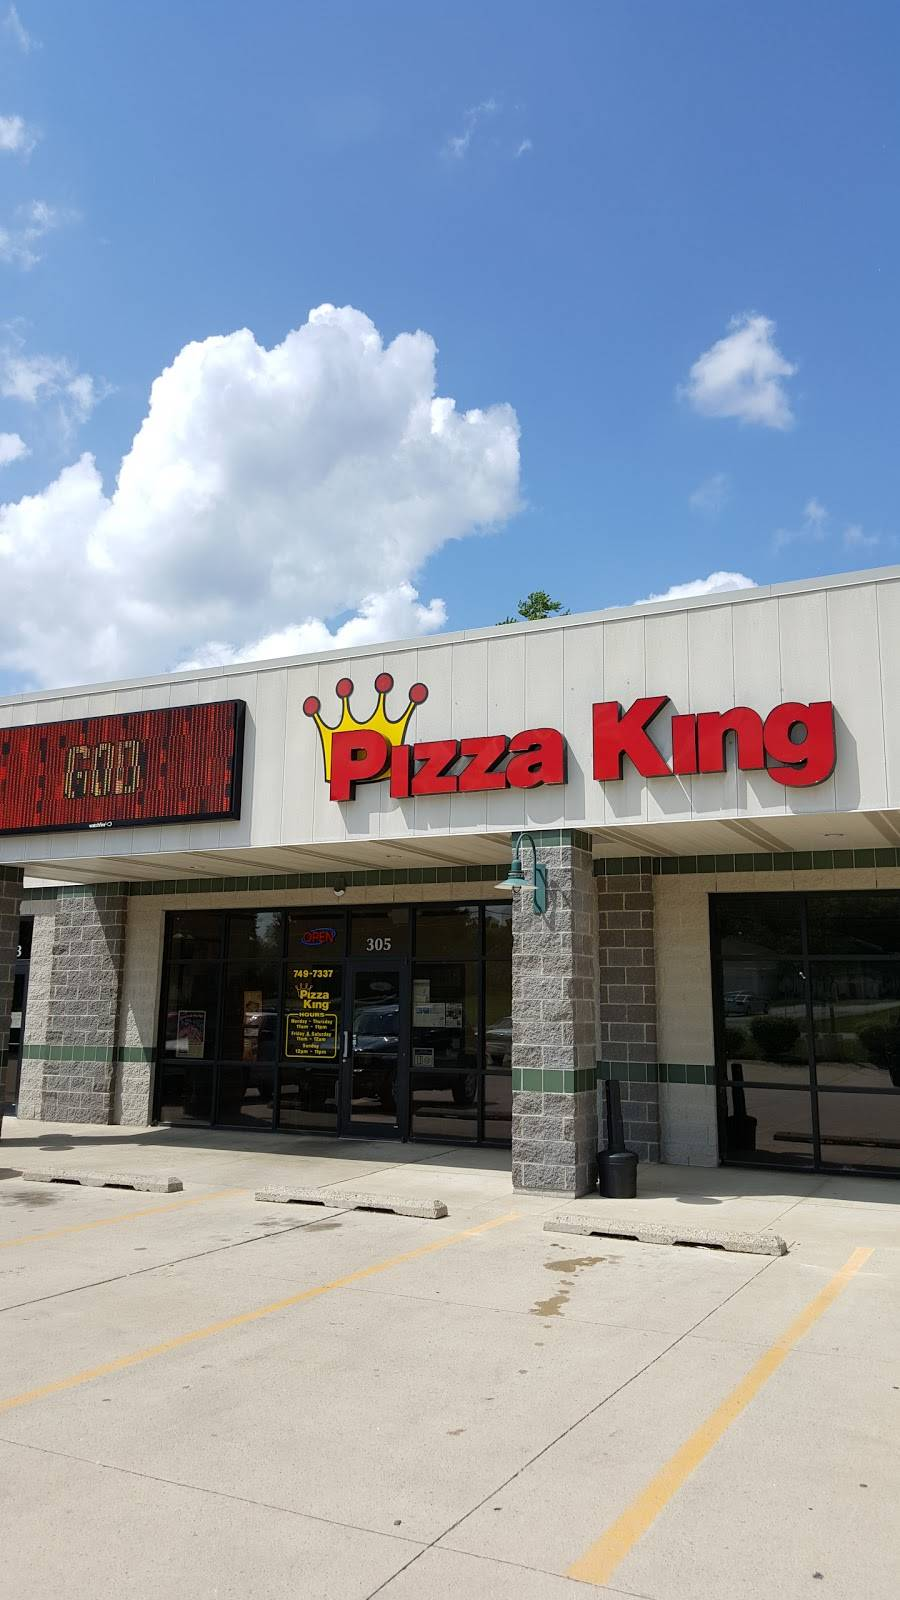 Pizza King | meal delivery | 305 IN-930, New Haven, IN 46774, USA | 2607497337 OR +1 260-749-7337